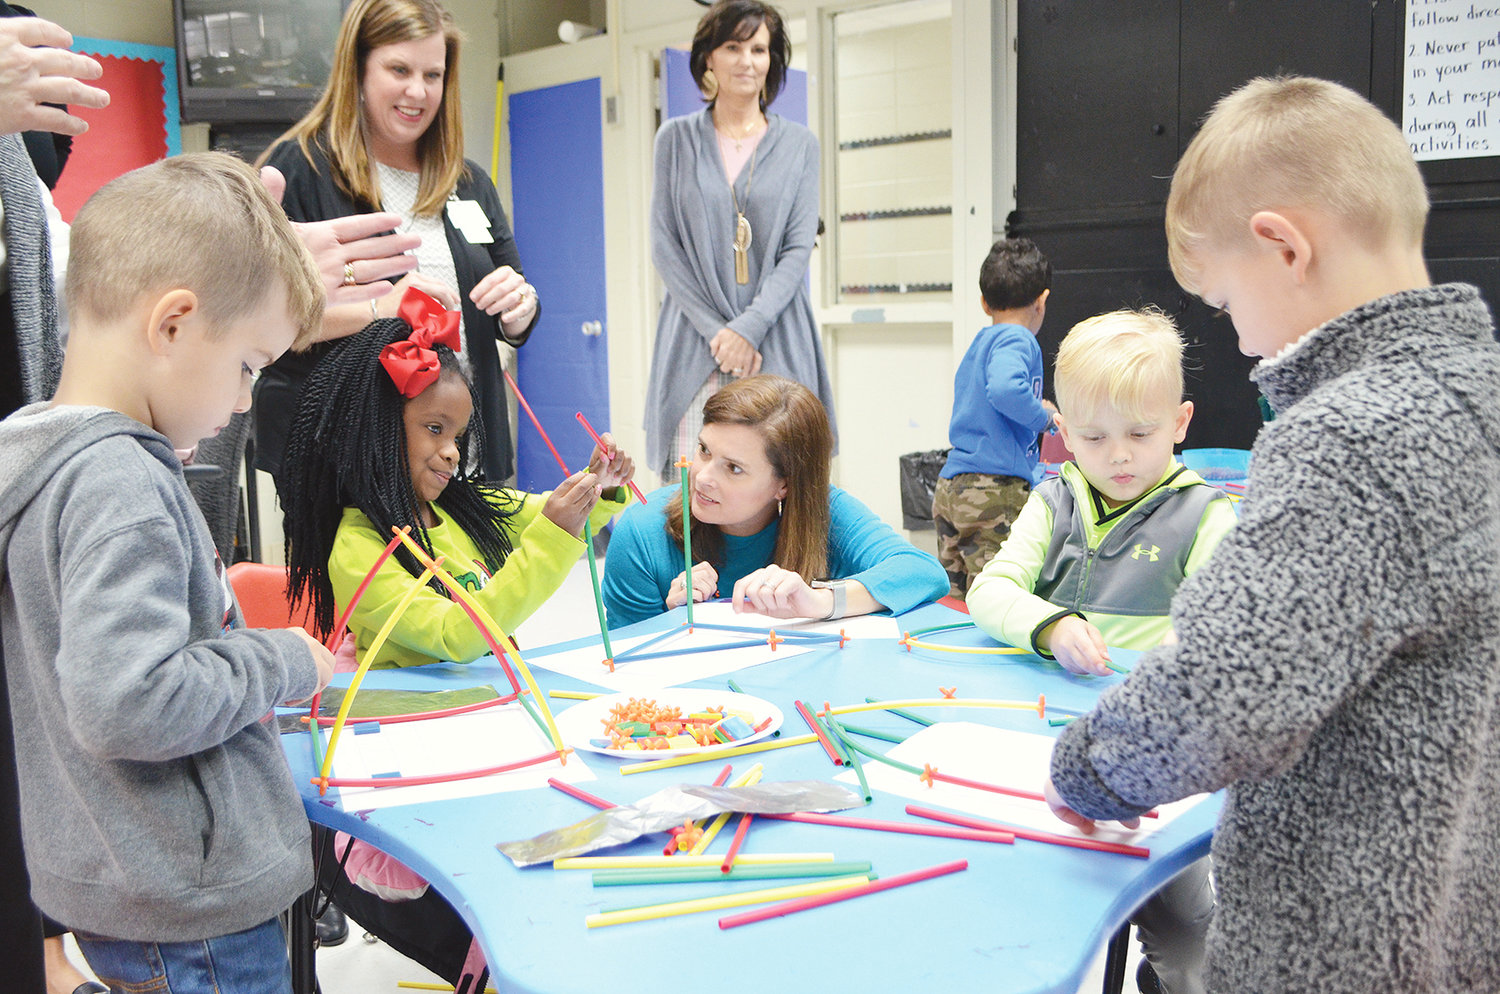 Jasper City Board of Education member Mary Beth Barber, center, observes students at T.R. Simmons Elementary School participating in a STEM activity Wednesday.